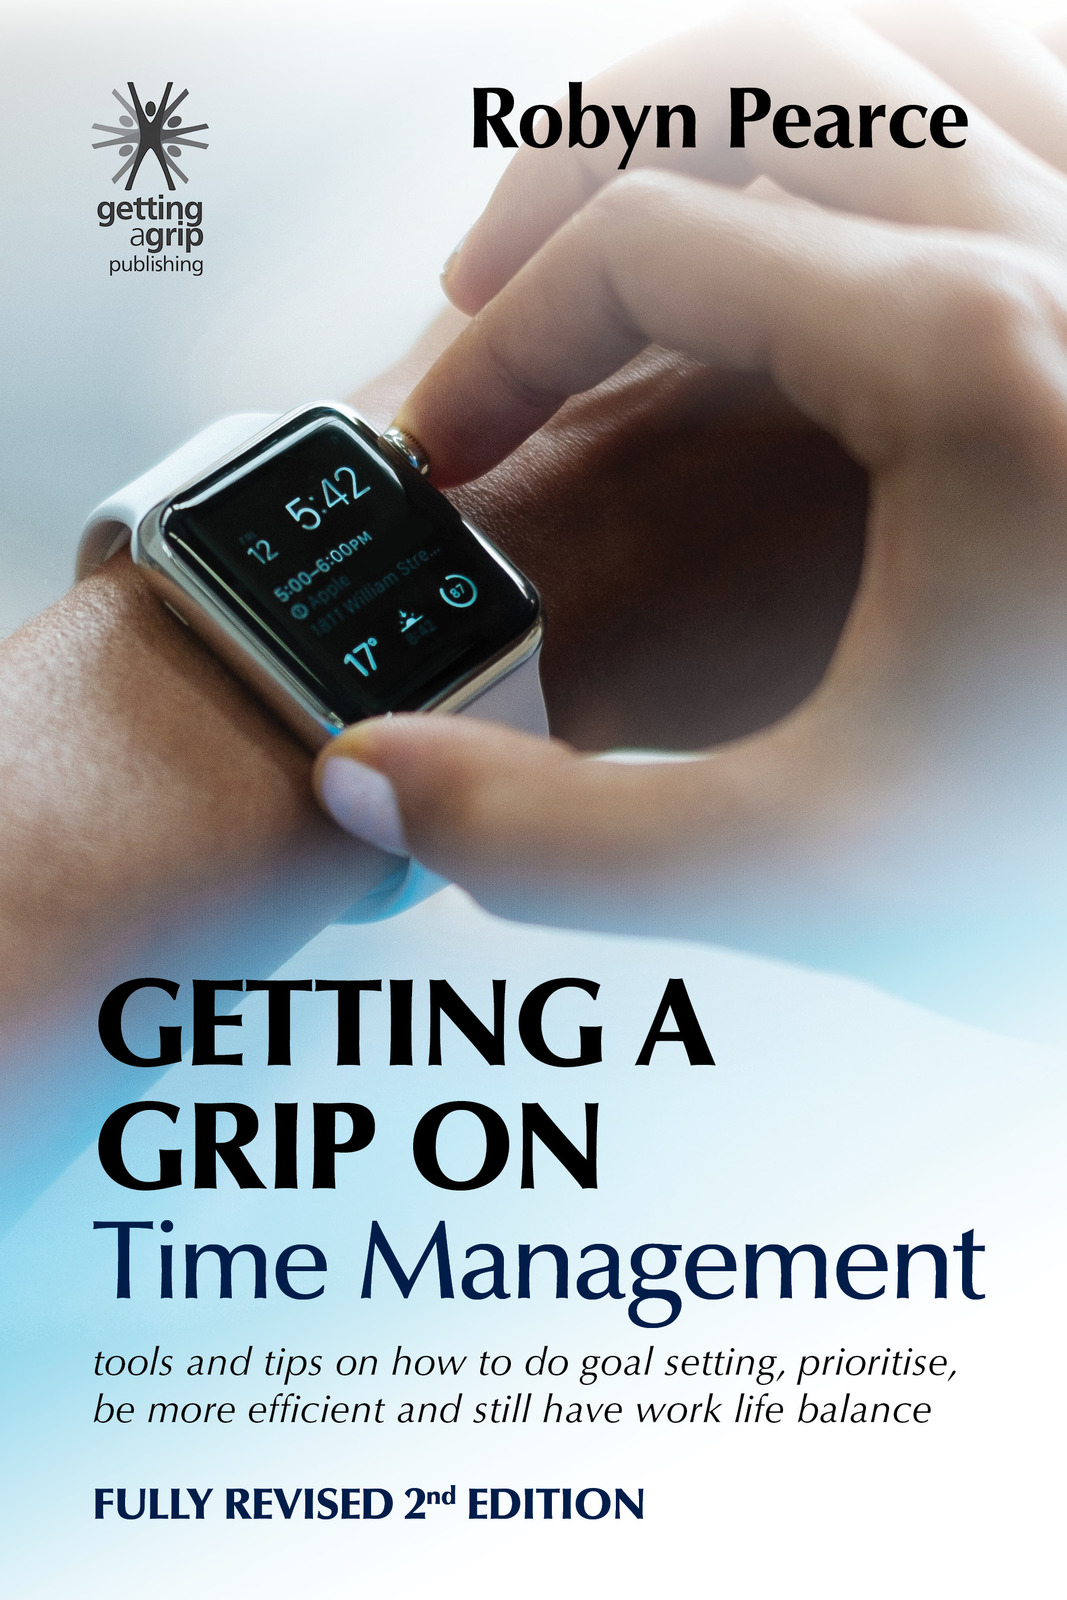 Getting A Grip on Time Management E-book